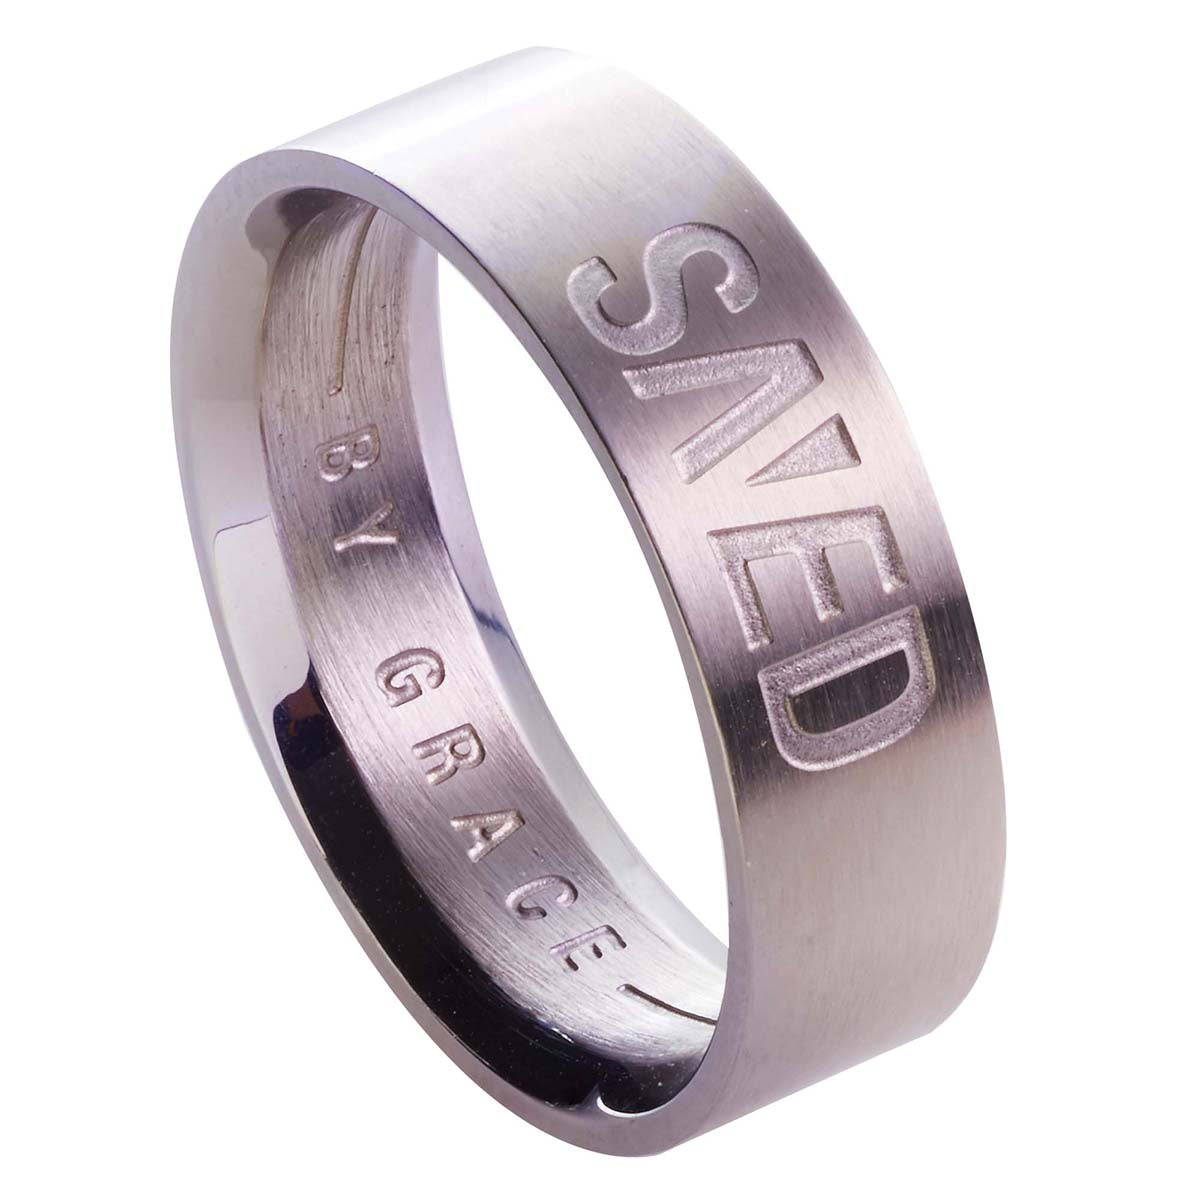 Save by Grace - Ephesians 2:8 Men's Ring